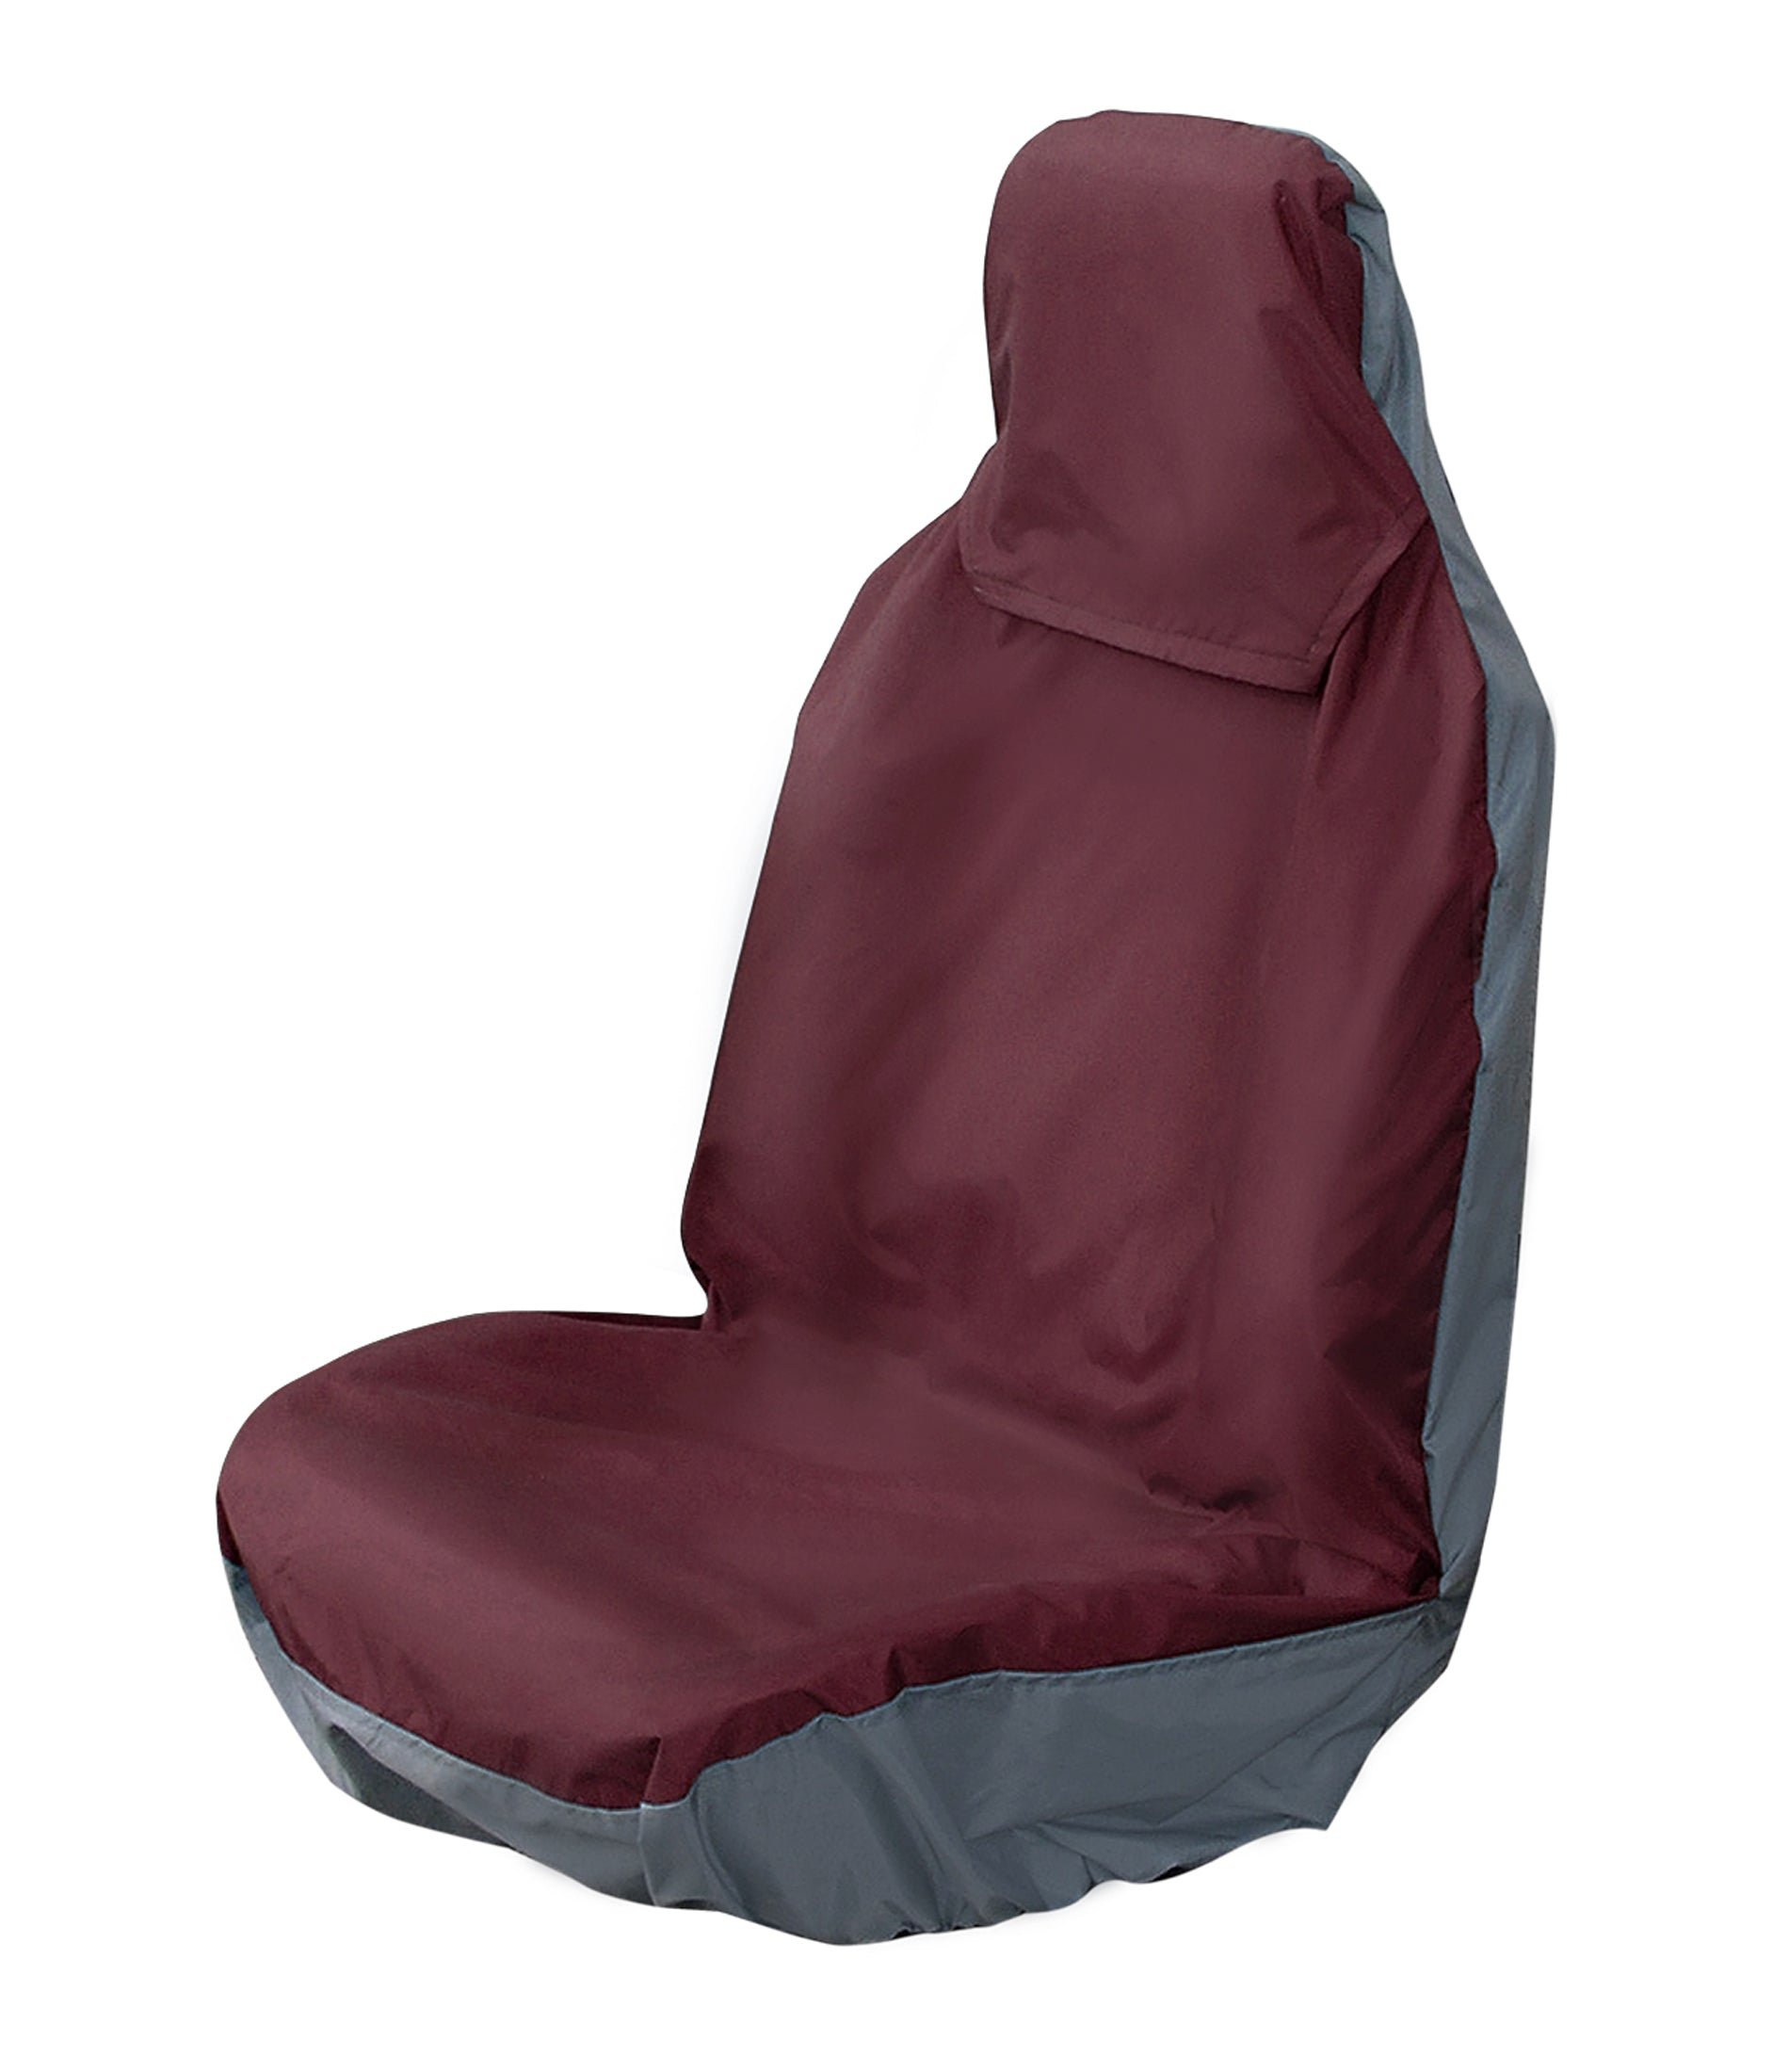 Land Rover Freelander 2 Rear Seat Cover